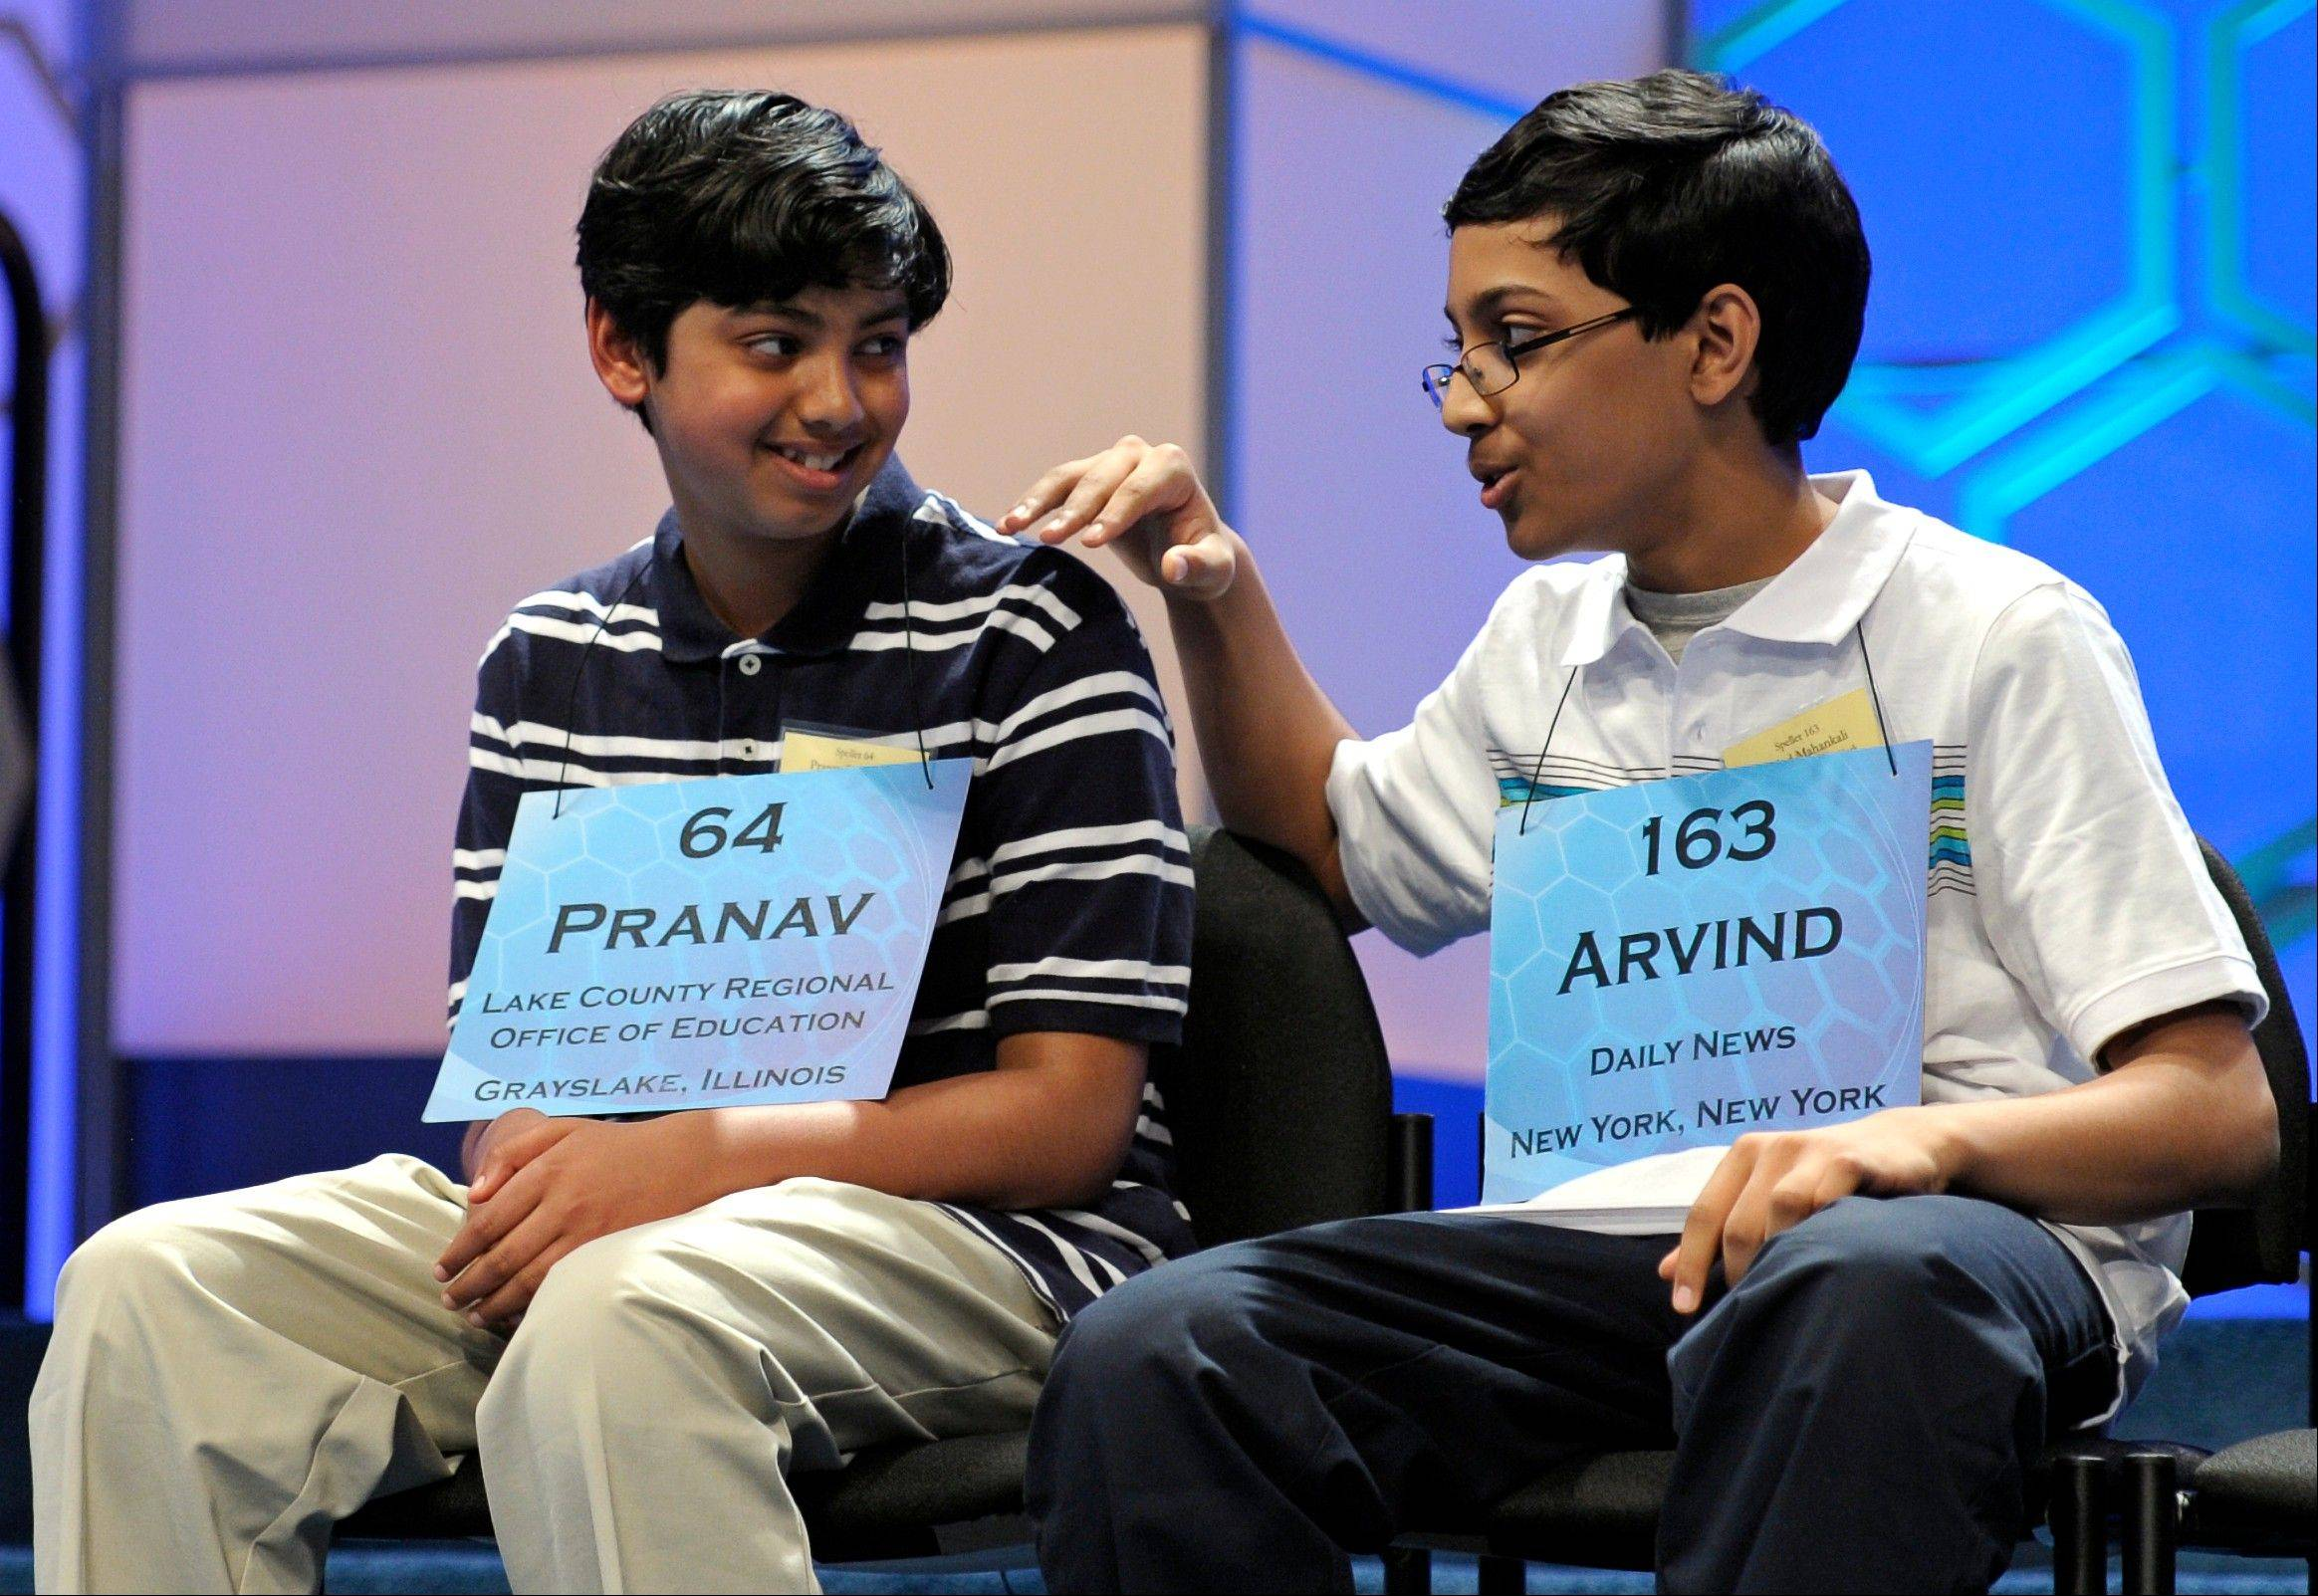 Scripps National Spelling Bee champion Arvind Mahankali, 13, of Bayside Hills, N.Y., consoles second-place finisher Pranav Sivakumar, 13, Tower Lakes after Sivakumar incorrectly spelled his final word during the finals in Oxon Hill, Md., Thursday.